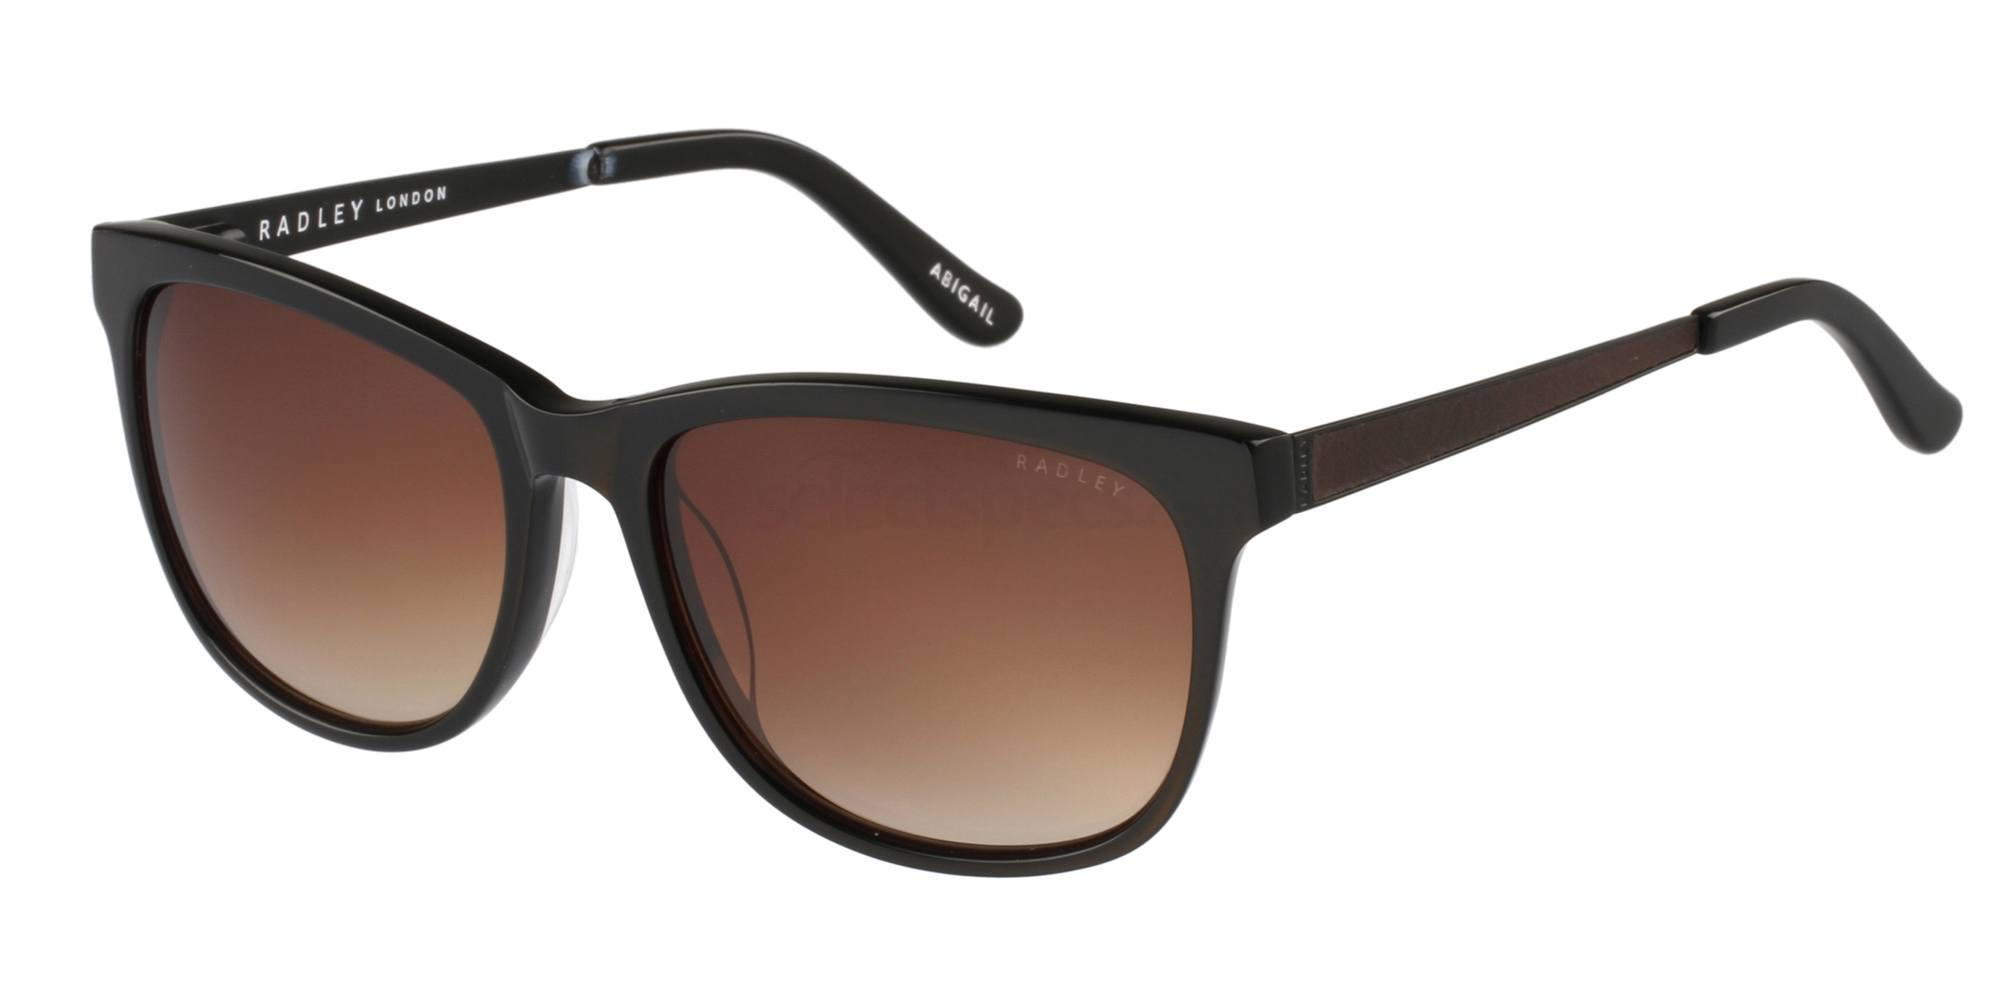 104 RDS-ABIGAIL Sunglasses, Radley London